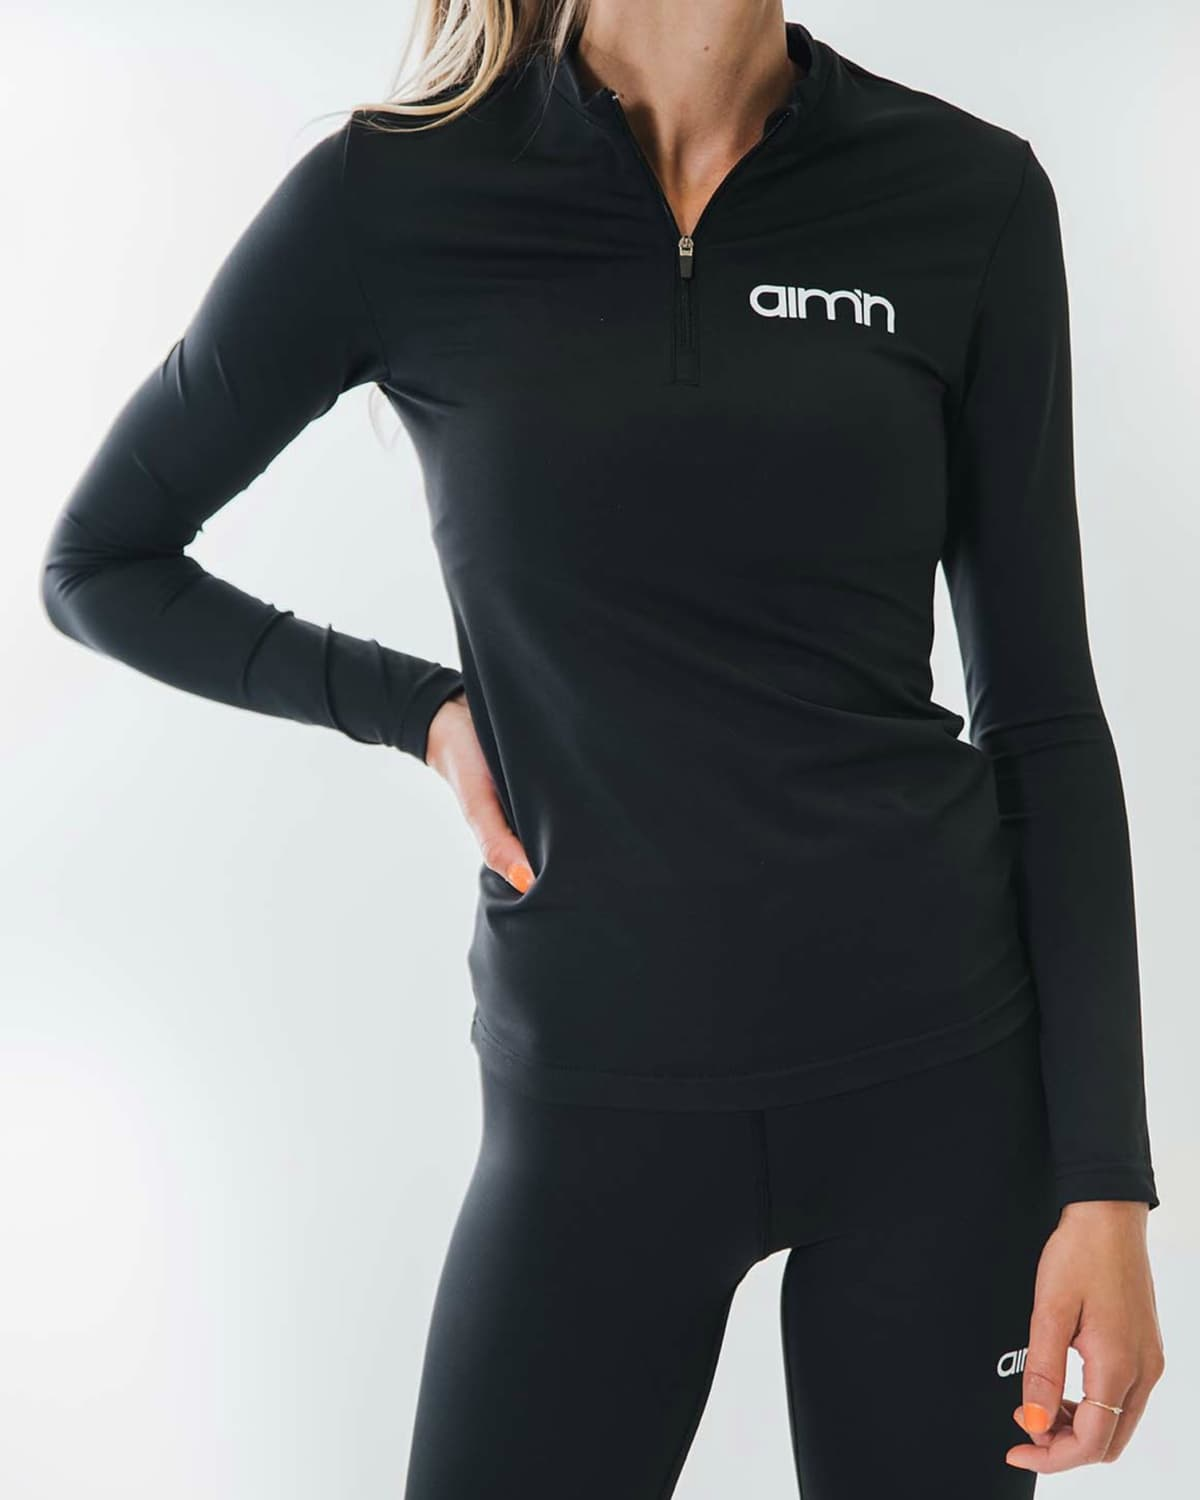 aimn_long_sleeve_20